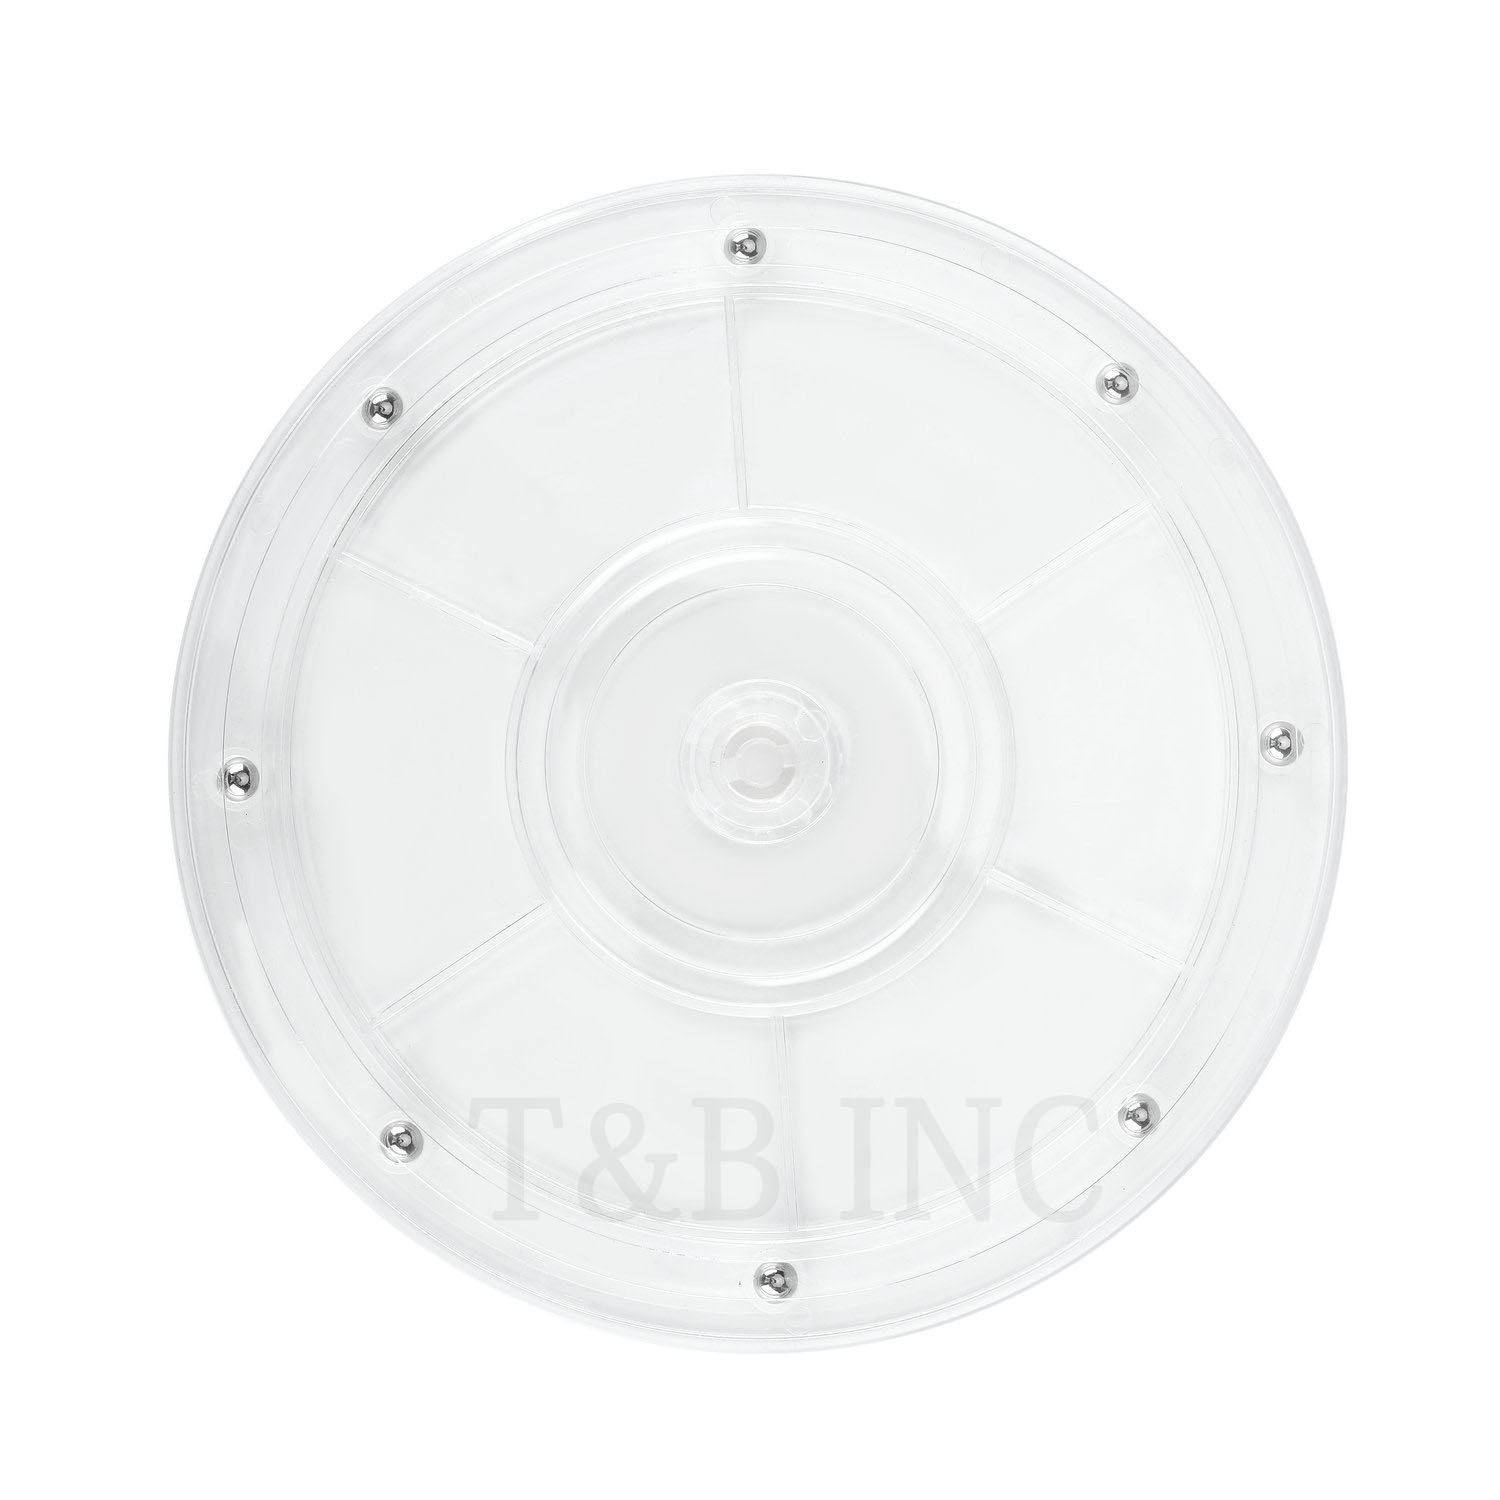 T&B 8 inch Lazy Susan Turntable Organizer White Acrylic for Spice Rack Table Cake Kitchen Pantry Decorating